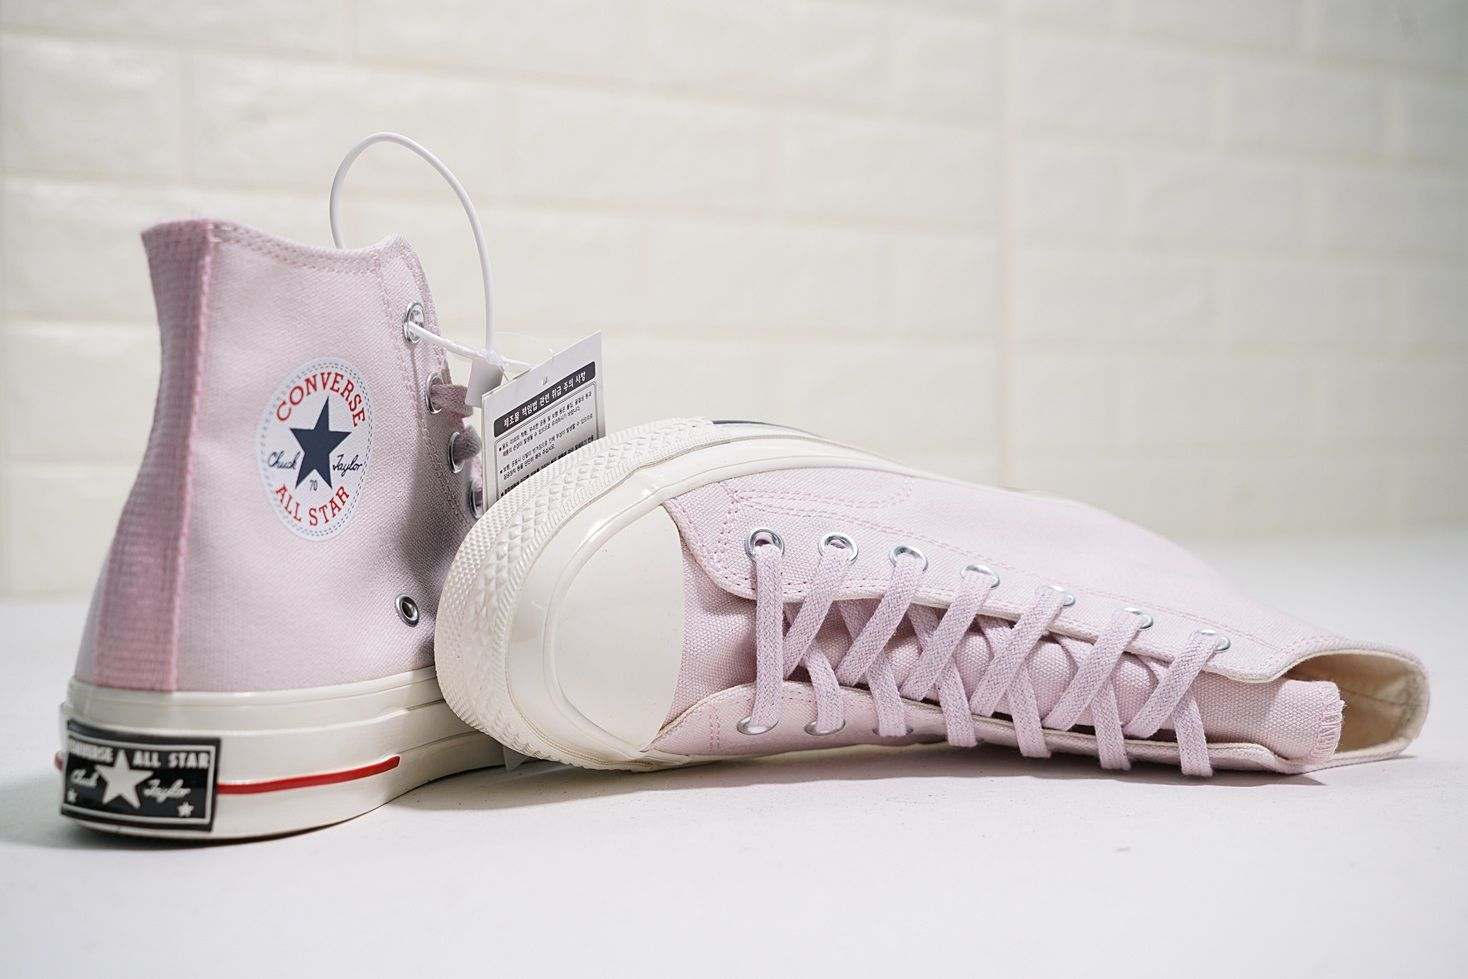 6f2029af1779 CONVERSE CHUCK TAYLOR 70S HERITAGE COURT BARELY ROSE 160492C ...